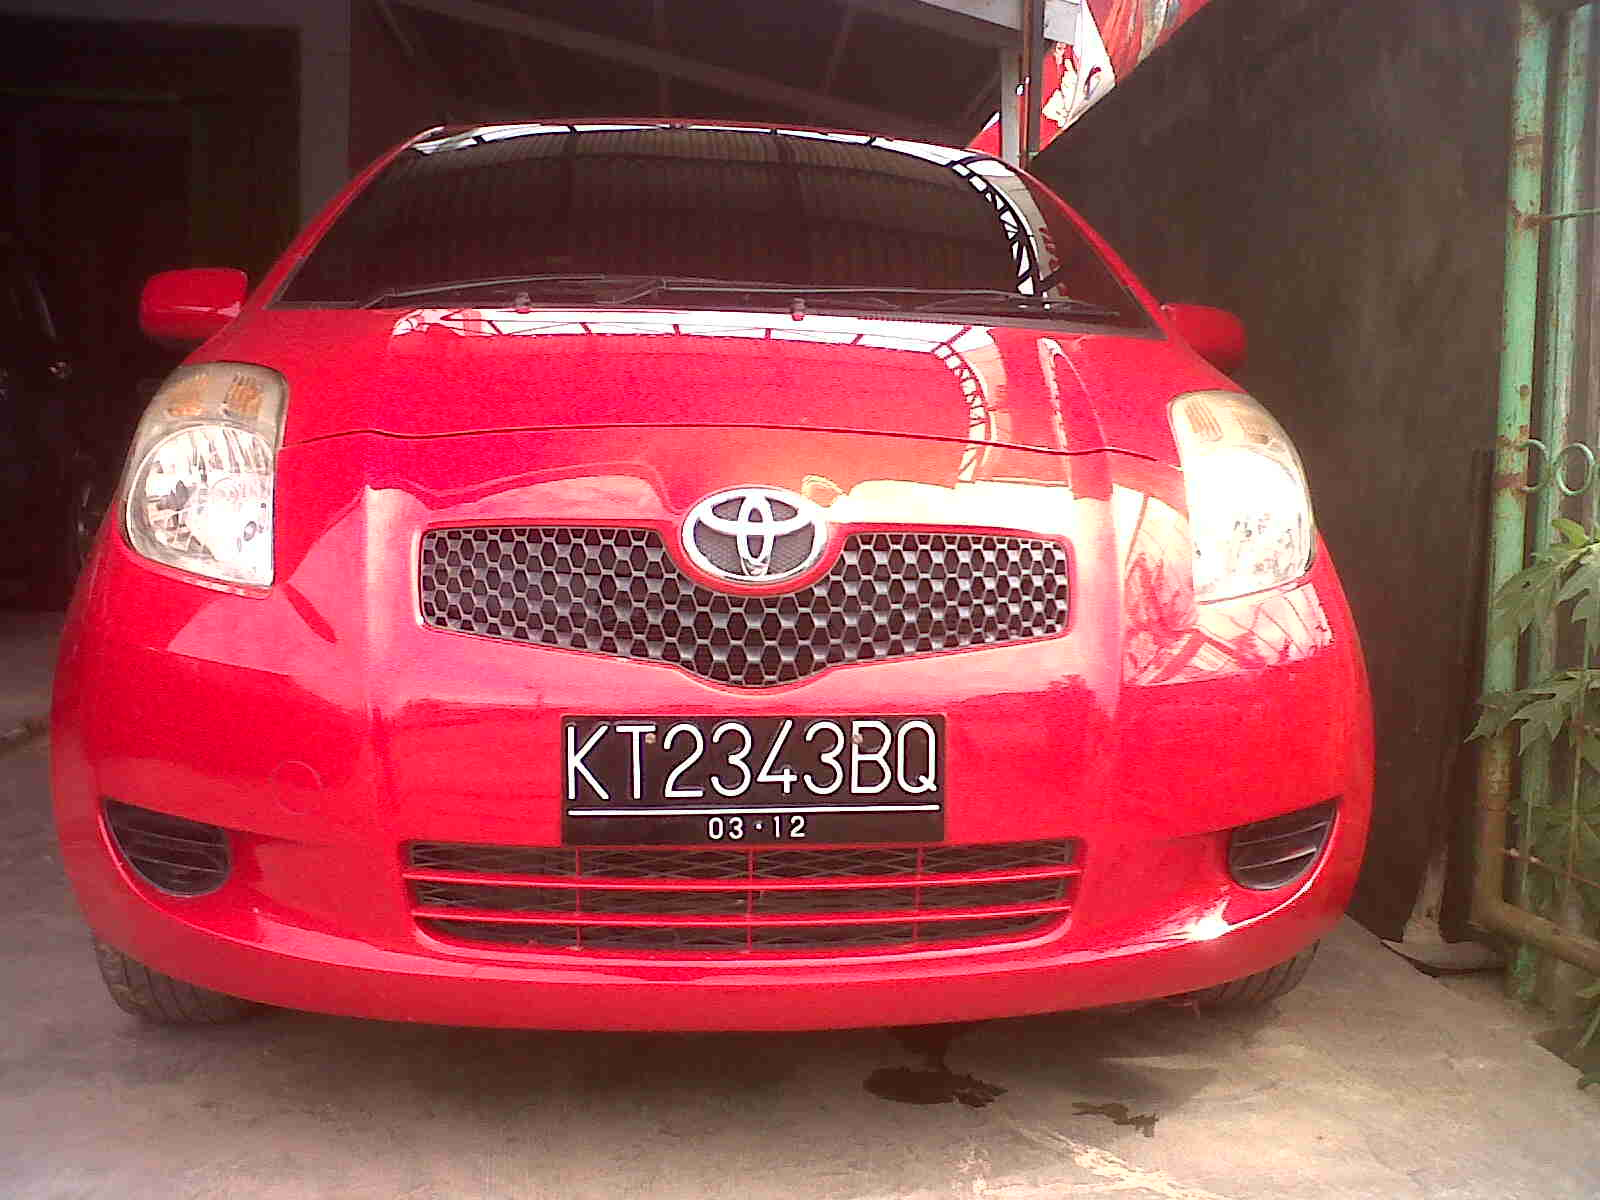 iklan bisnis samarinda dijual mobil toyota yaris e manual. Black Bedroom Furniture Sets. Home Design Ideas